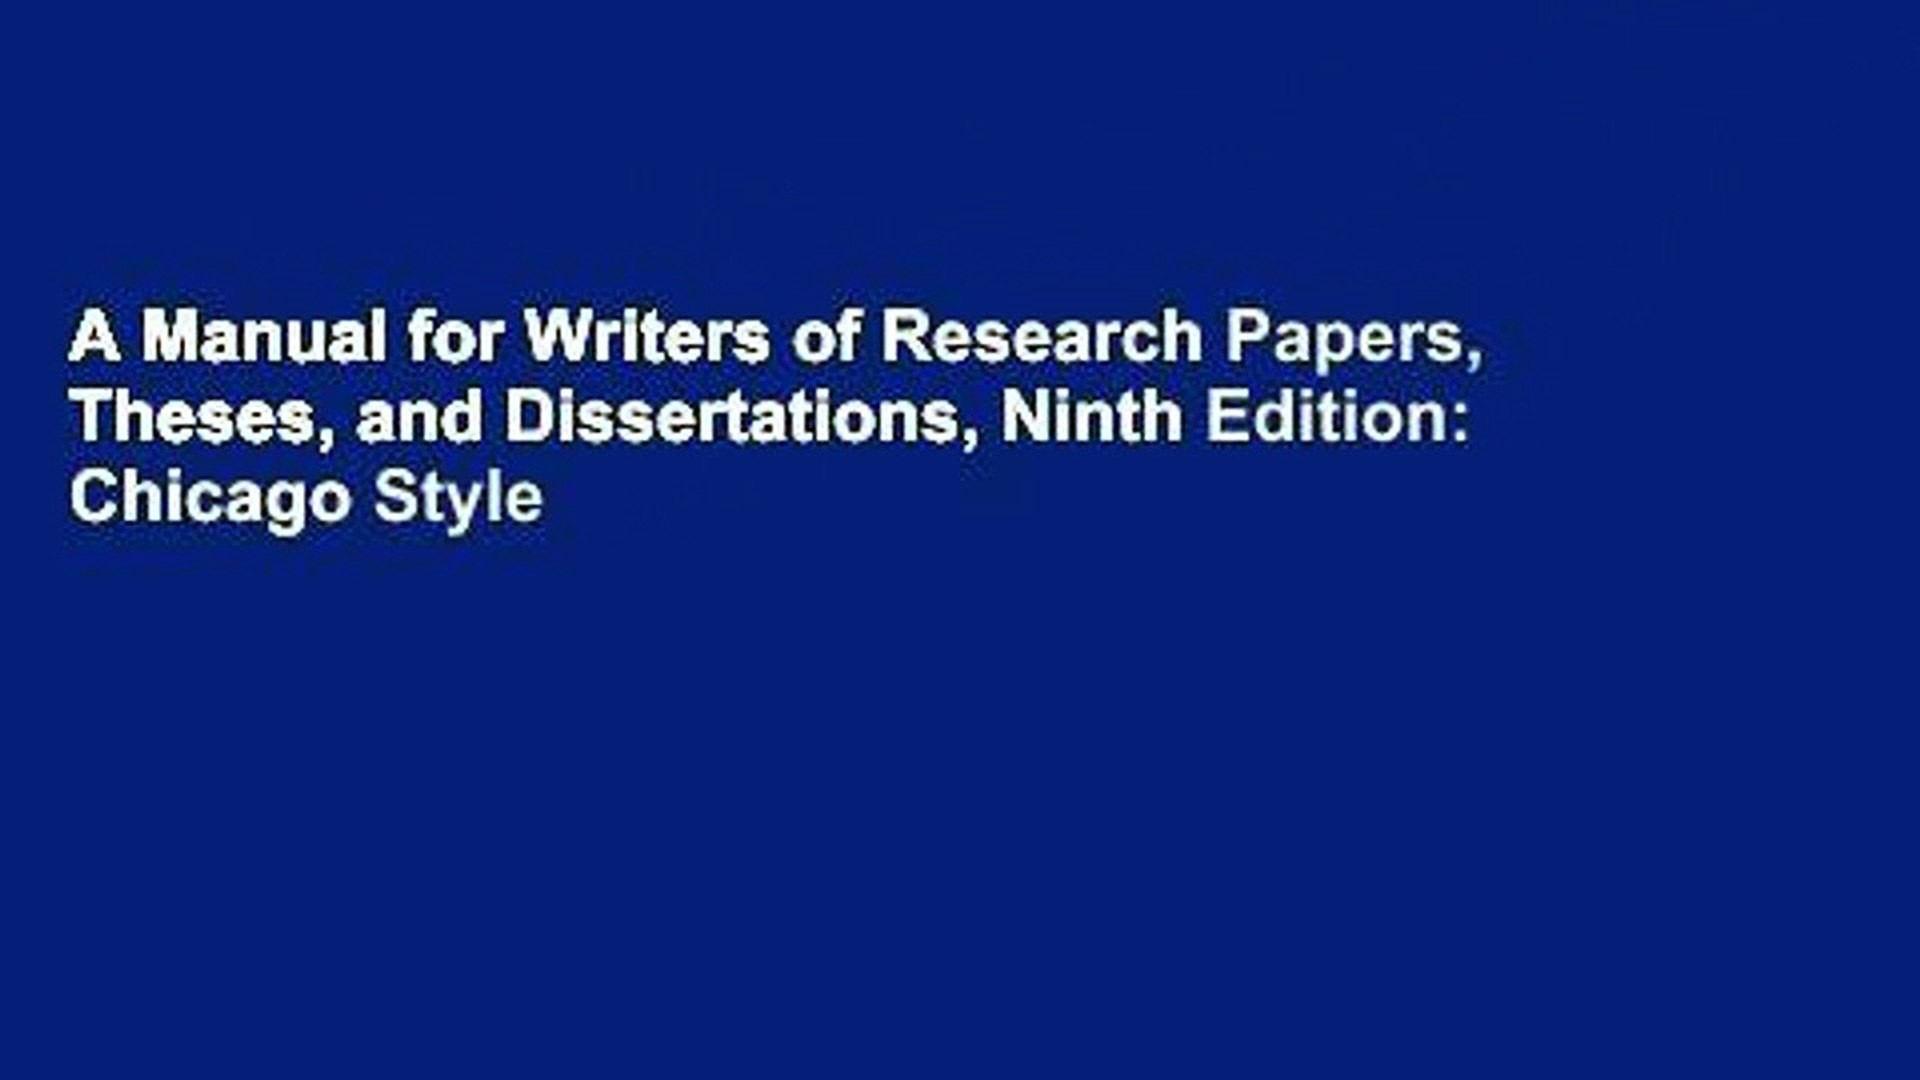 028 Manual For Writers Of Researchs Theses And Dissertations X1080 V4x Sensational A Research Papers 8th Edition Pdf Eighth 1920